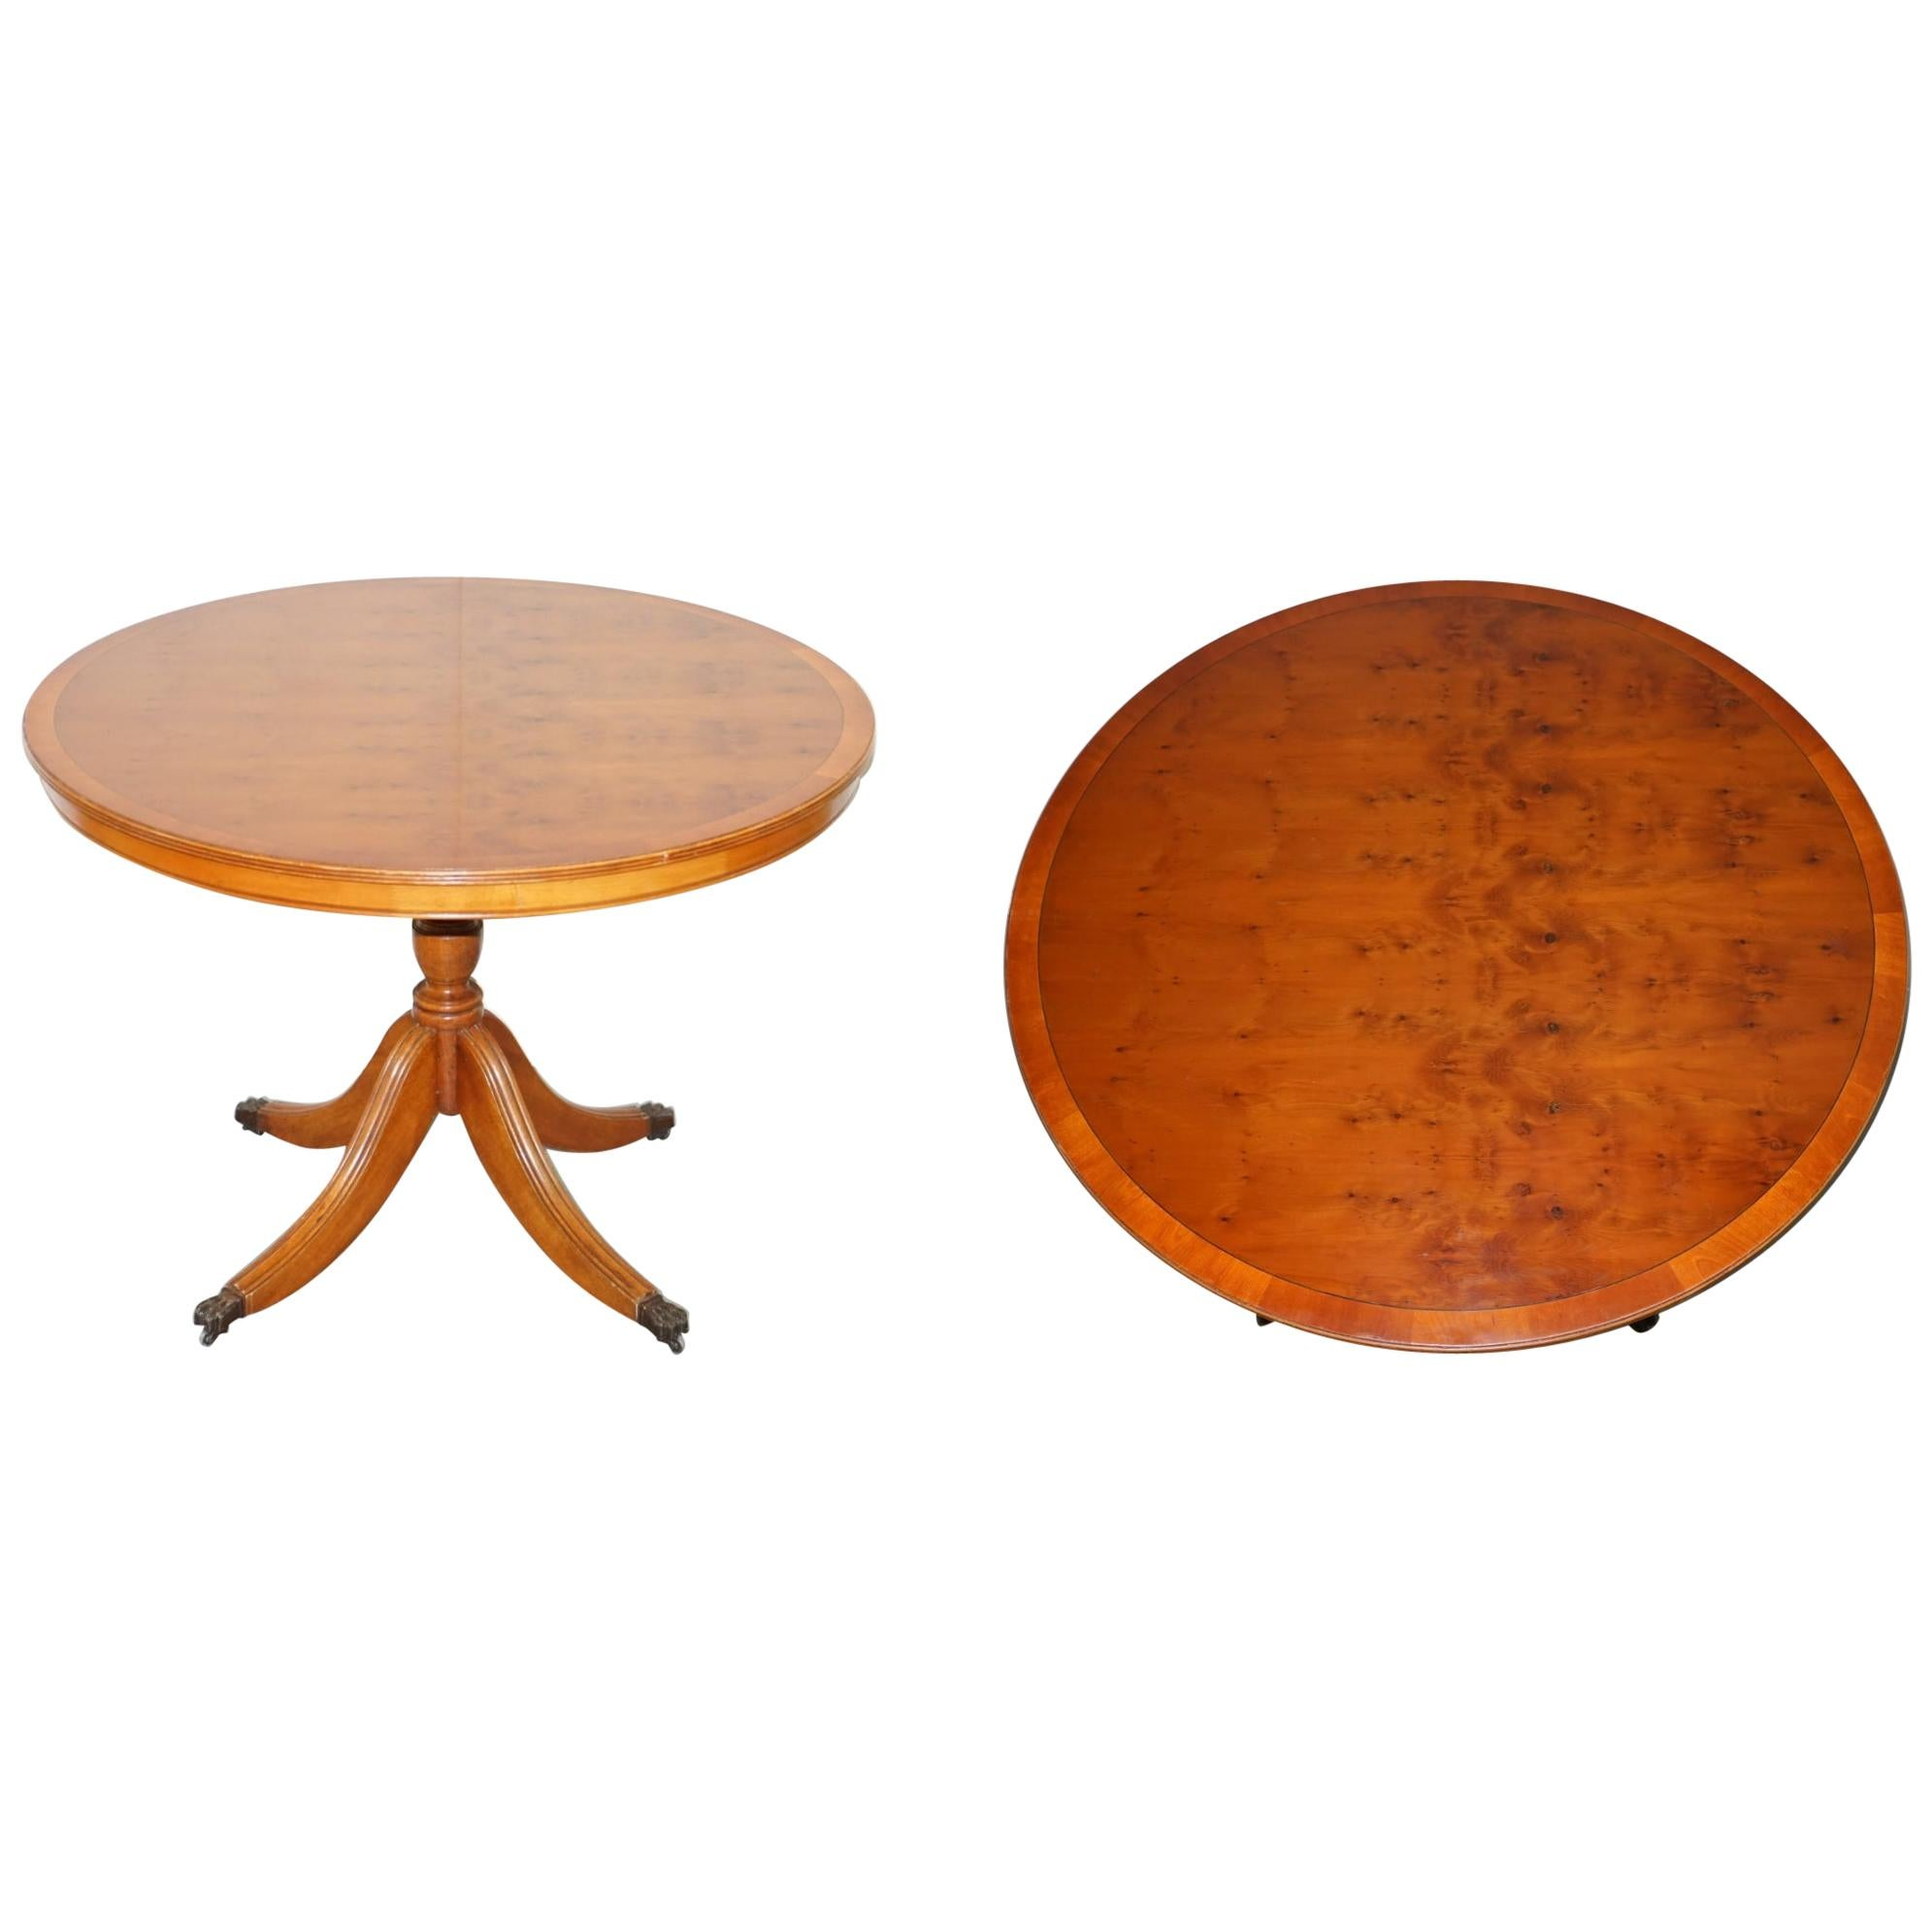 Stunning Burr Yew Wood Round Tilt-Top Dining or Occasional Centre Table Patina